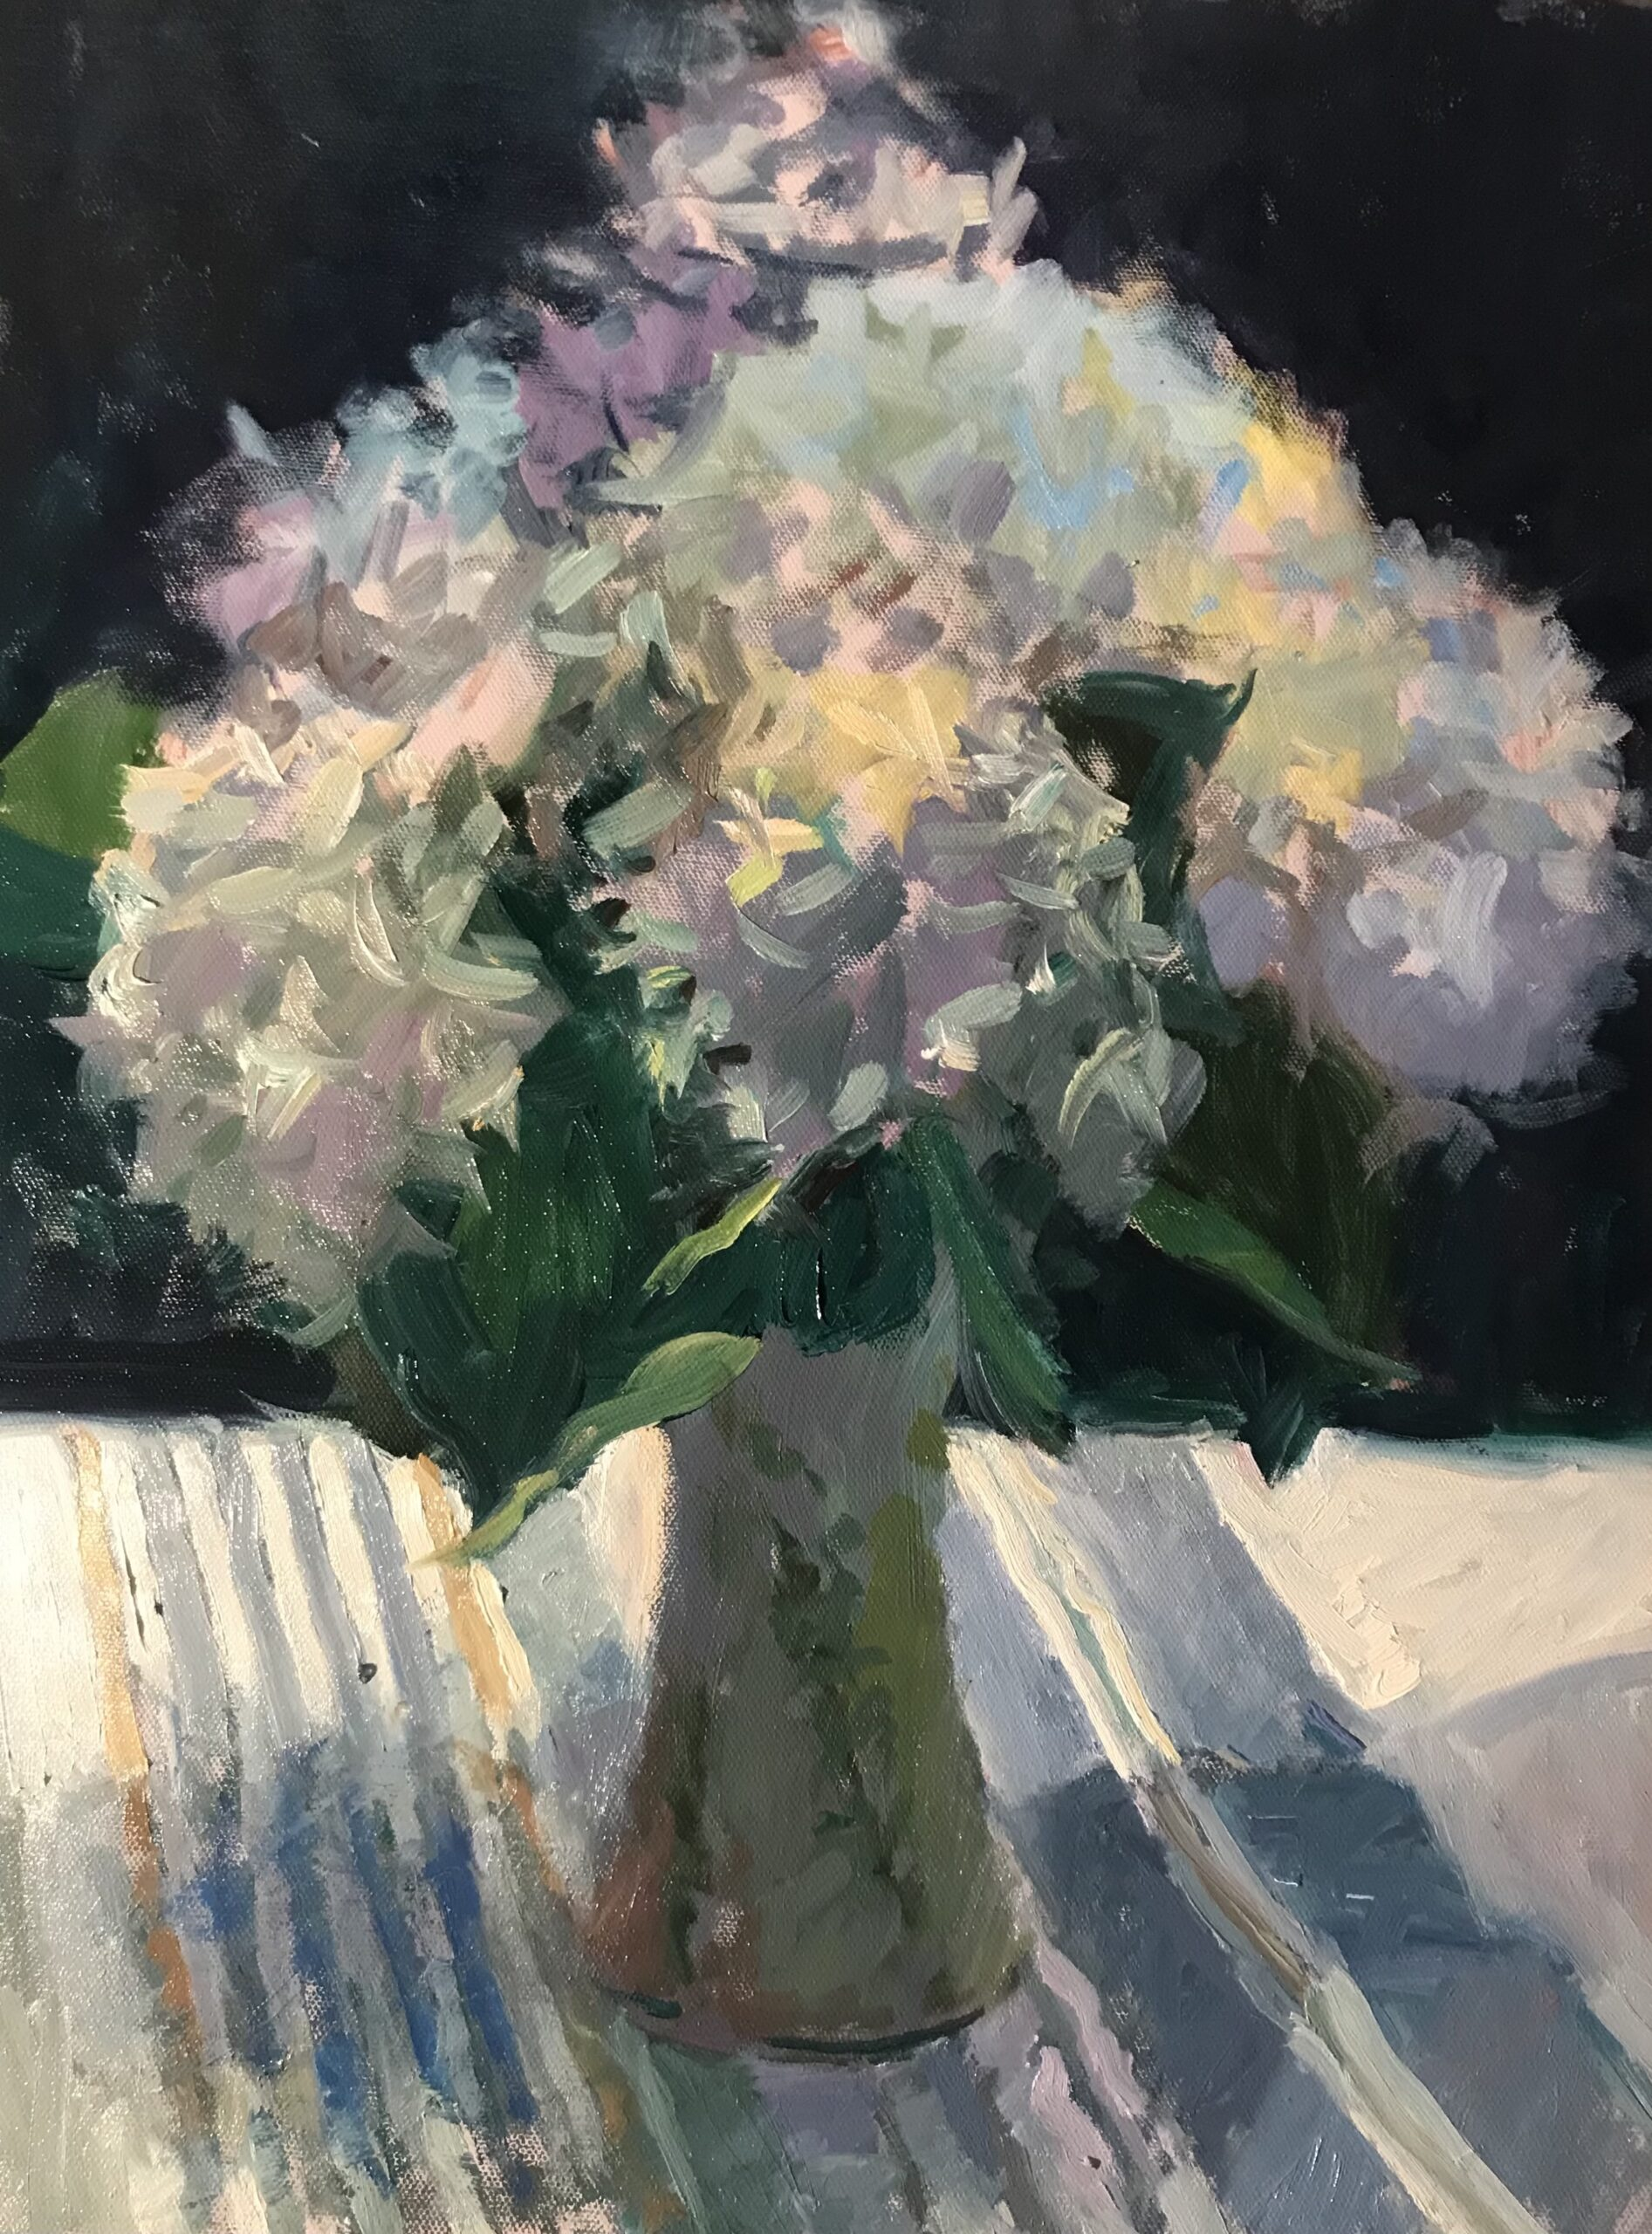 """""""Blue and White Hydrangeas"""", Oil on Canvas on Panel, 20 x 16 Inches, by Susan Grisell"""